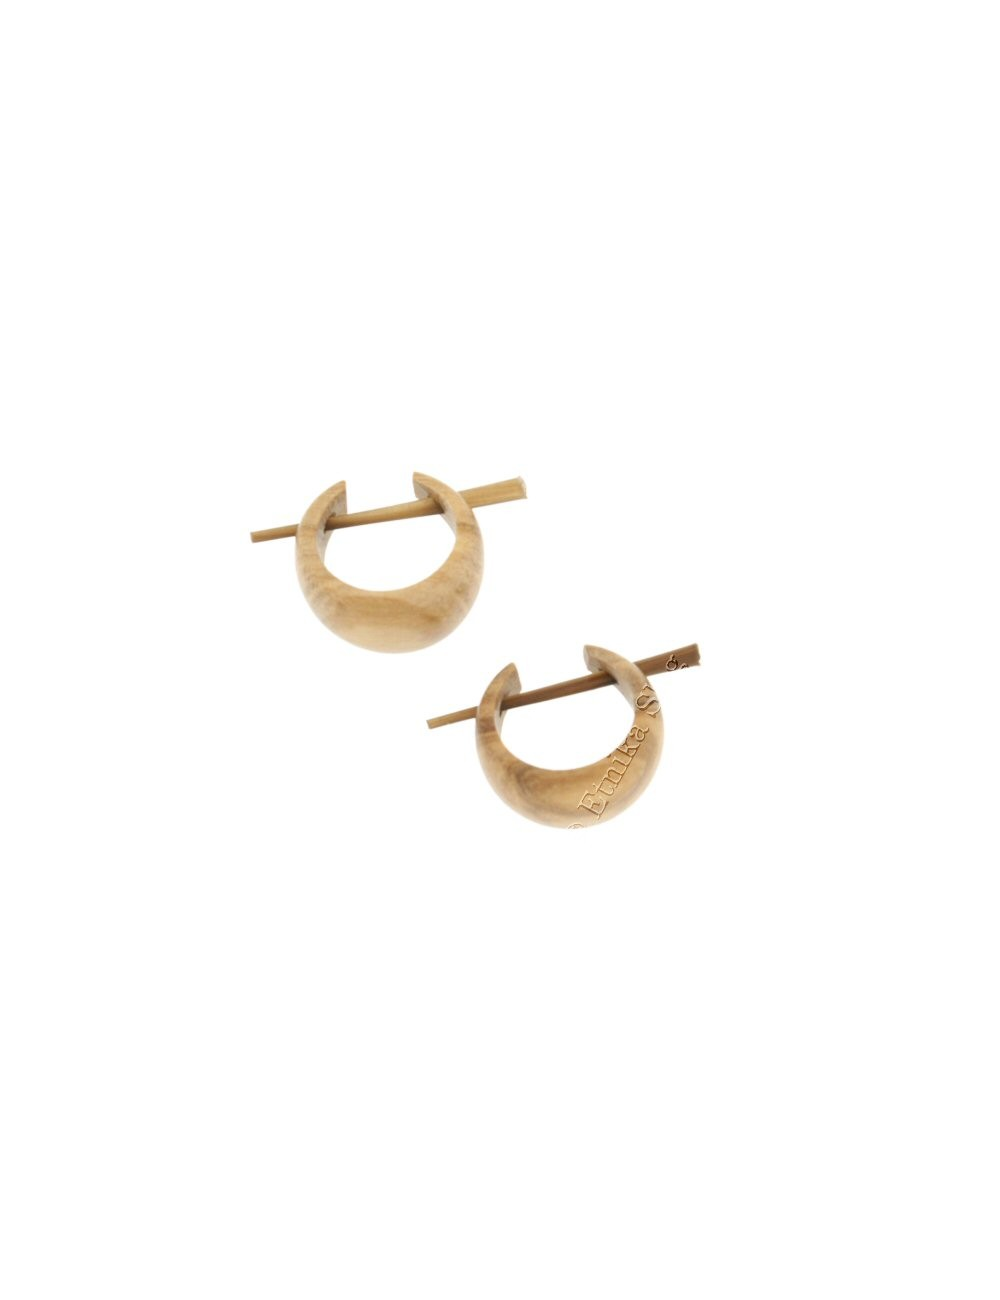 WOODEN EARRINGS LE-THO480-02 - Oriente Import S.r.l.